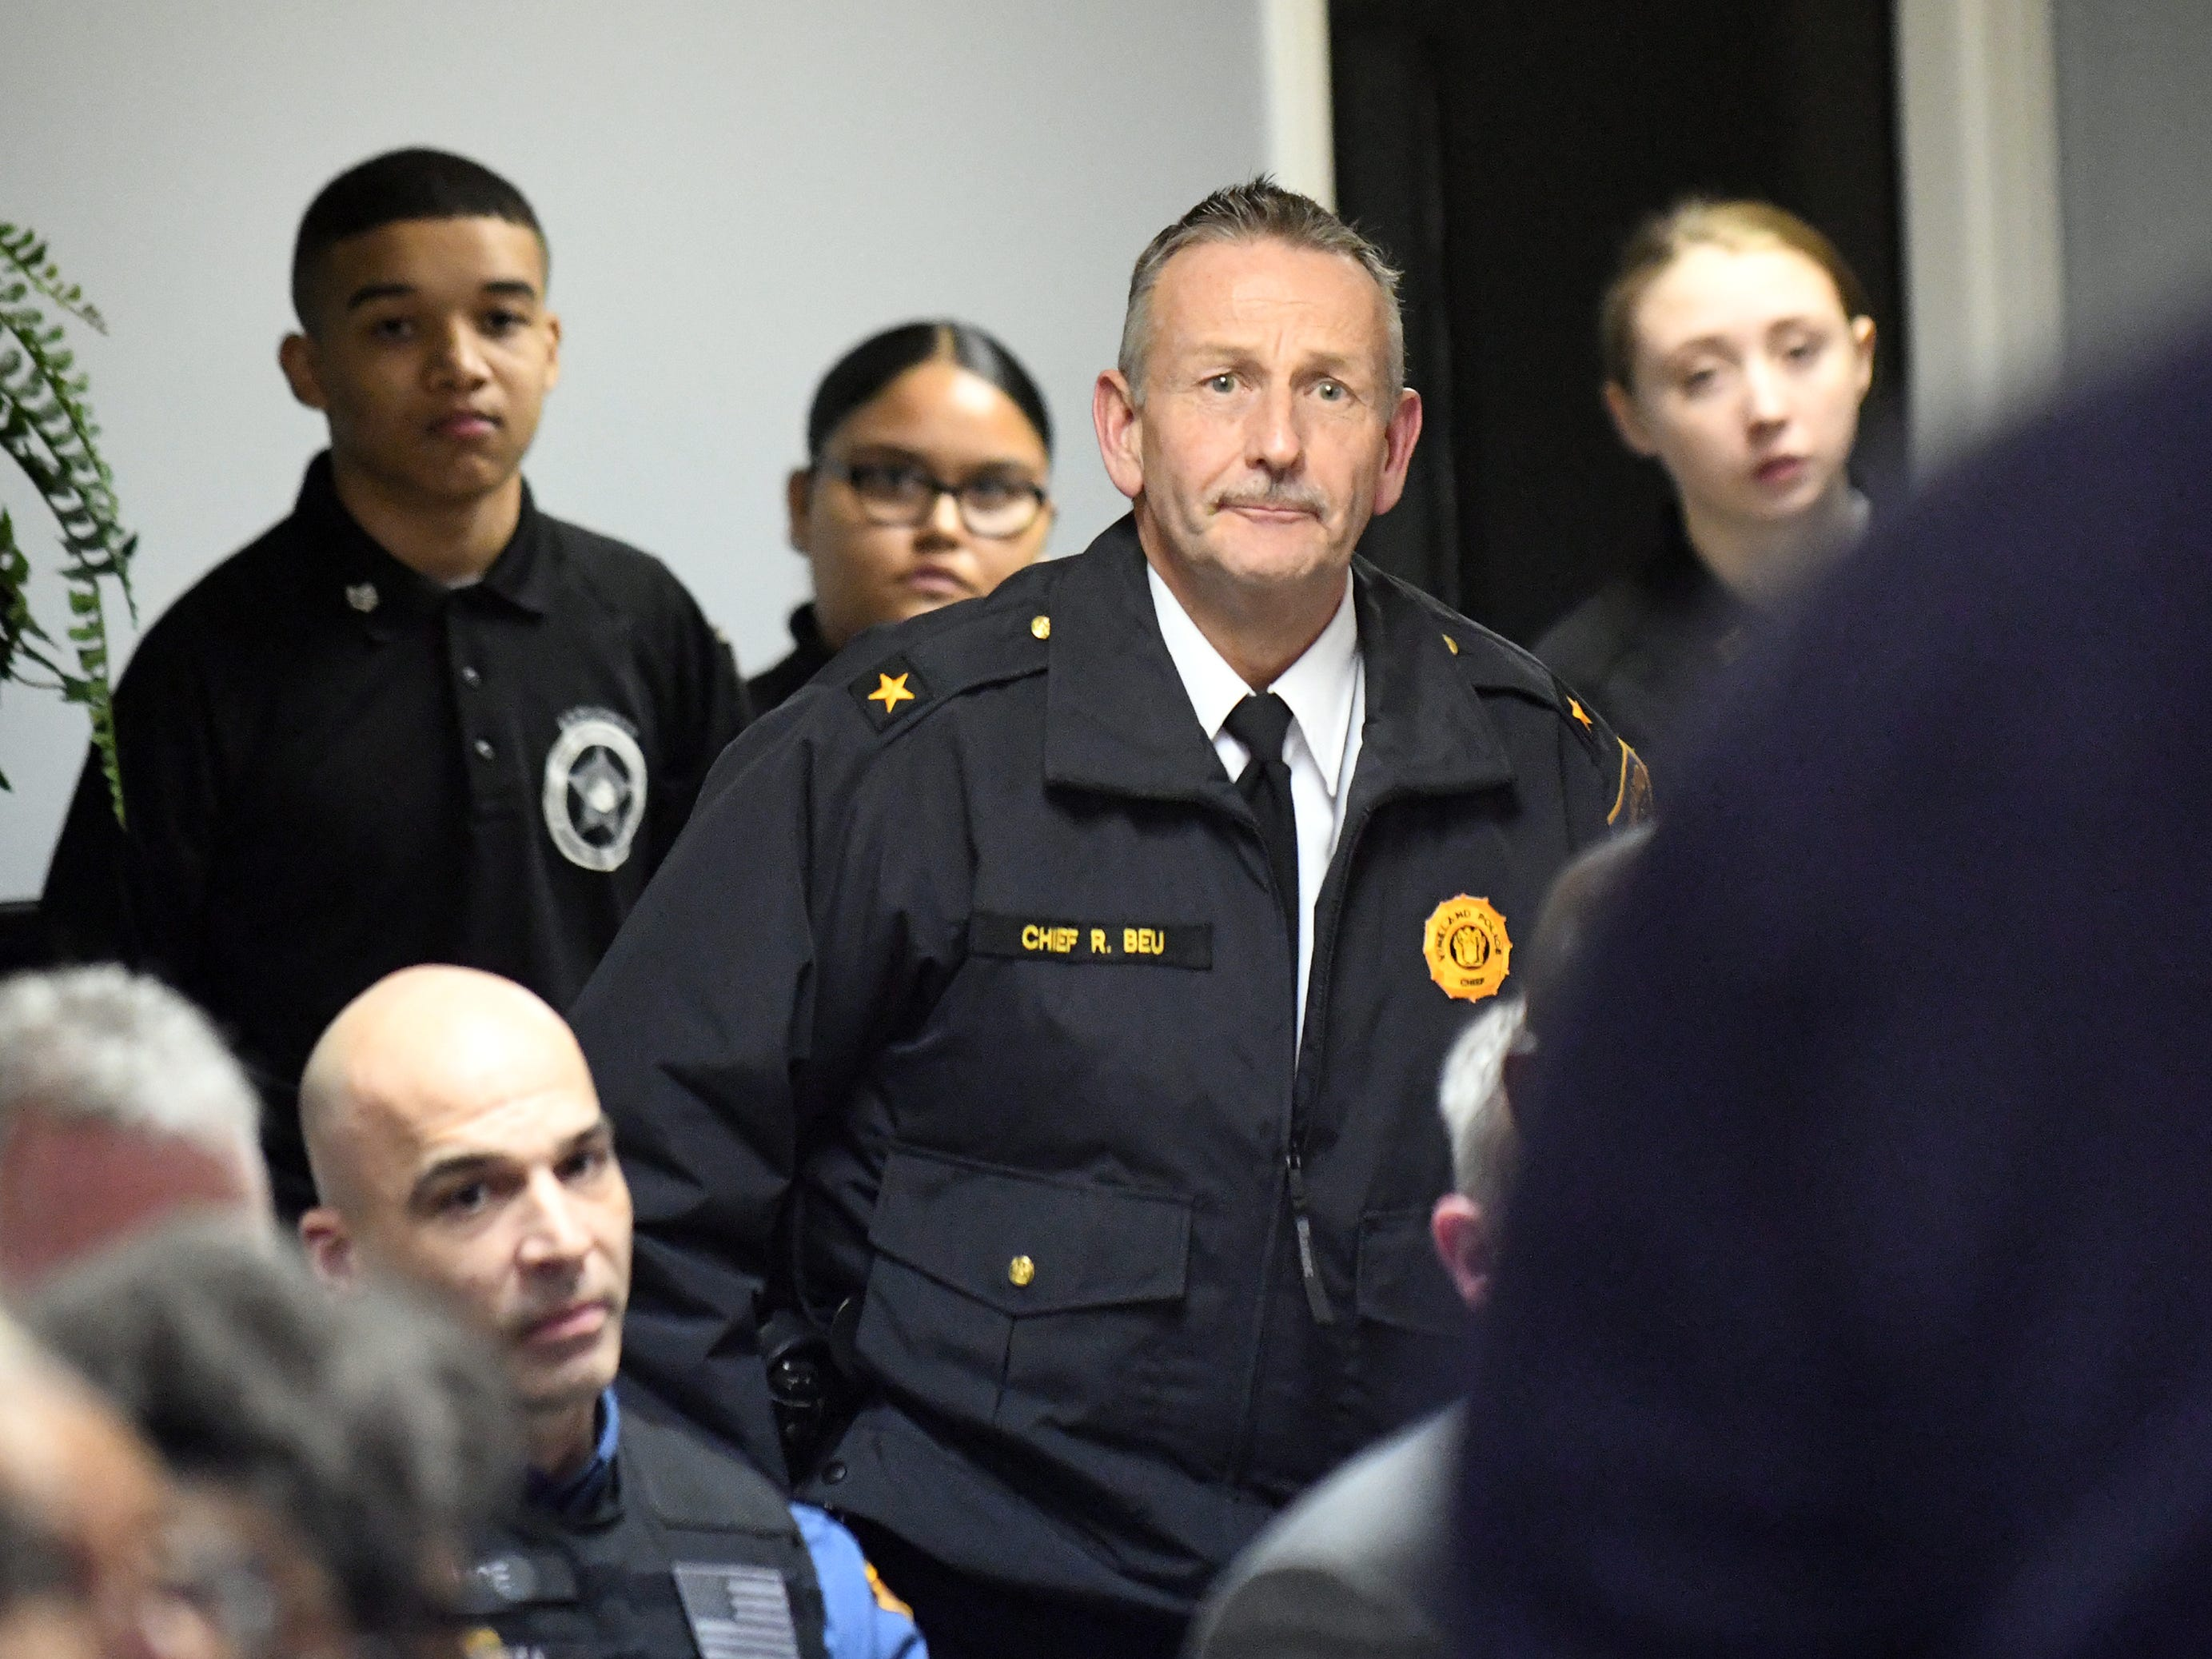 "Vineland Police Chief Rudy Beu addresses the crowd during a community ""listening session"" at Union Baptist Temple in Bridgeton on Wednesday, Jan. 23, 2019."